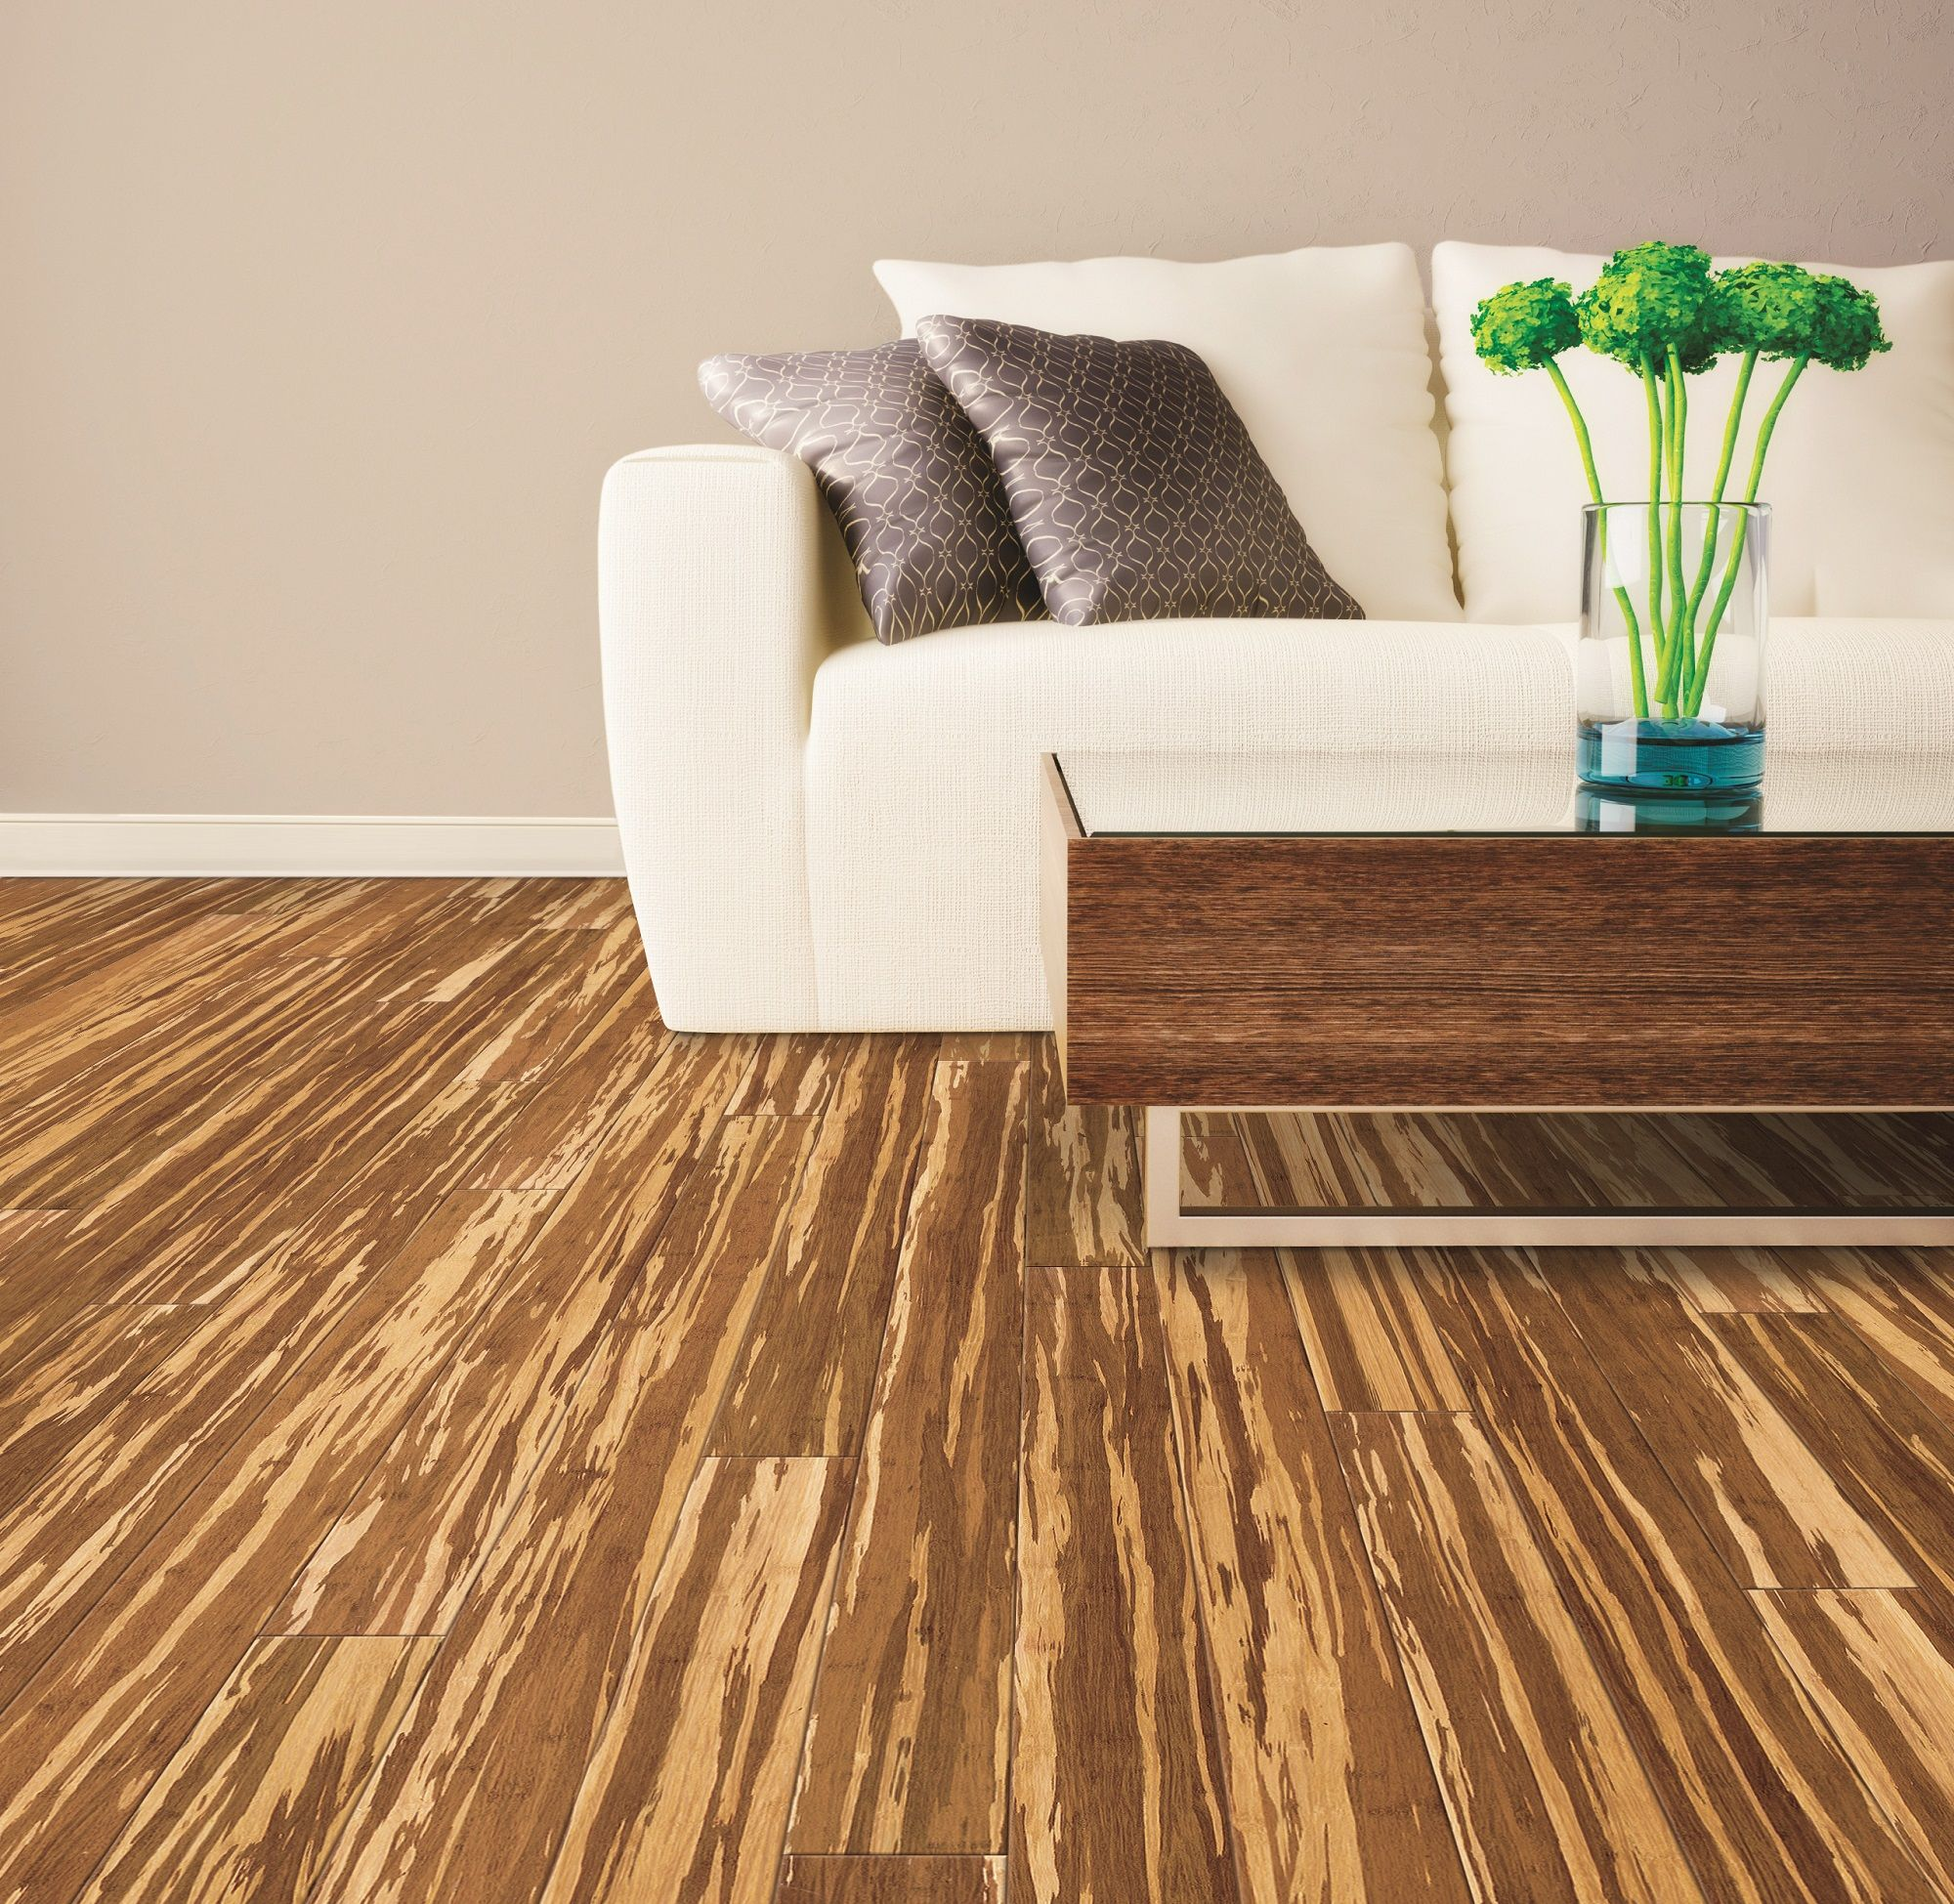 moso swb nat product strand bamboo flooring collection woods panel tesoro floor super ss products by natural